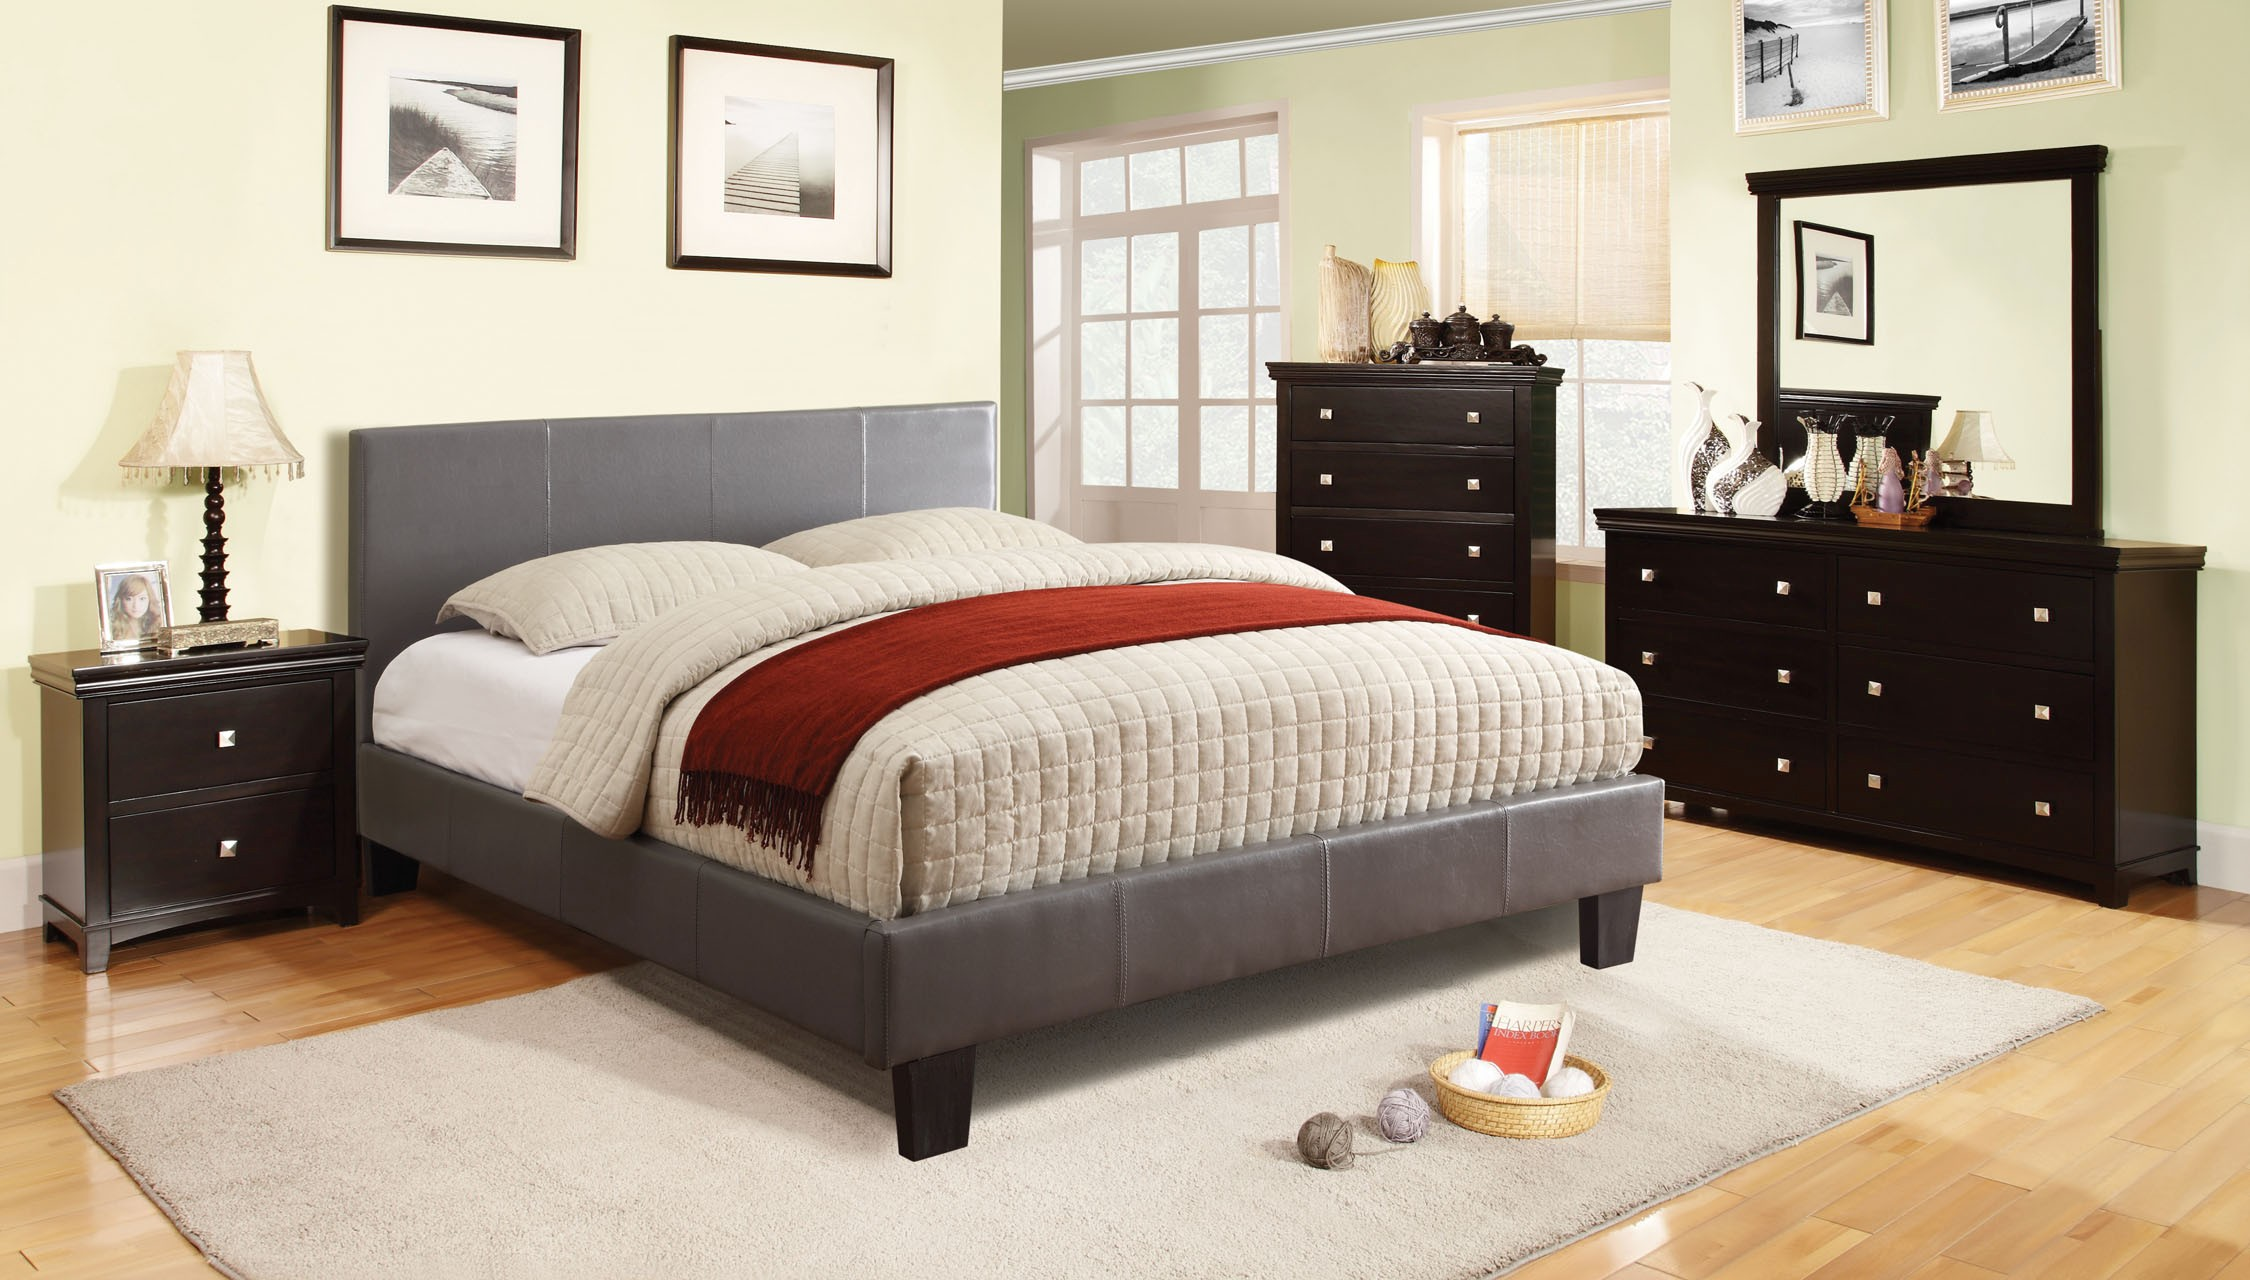 Winn Park Bedroom Set - Gray